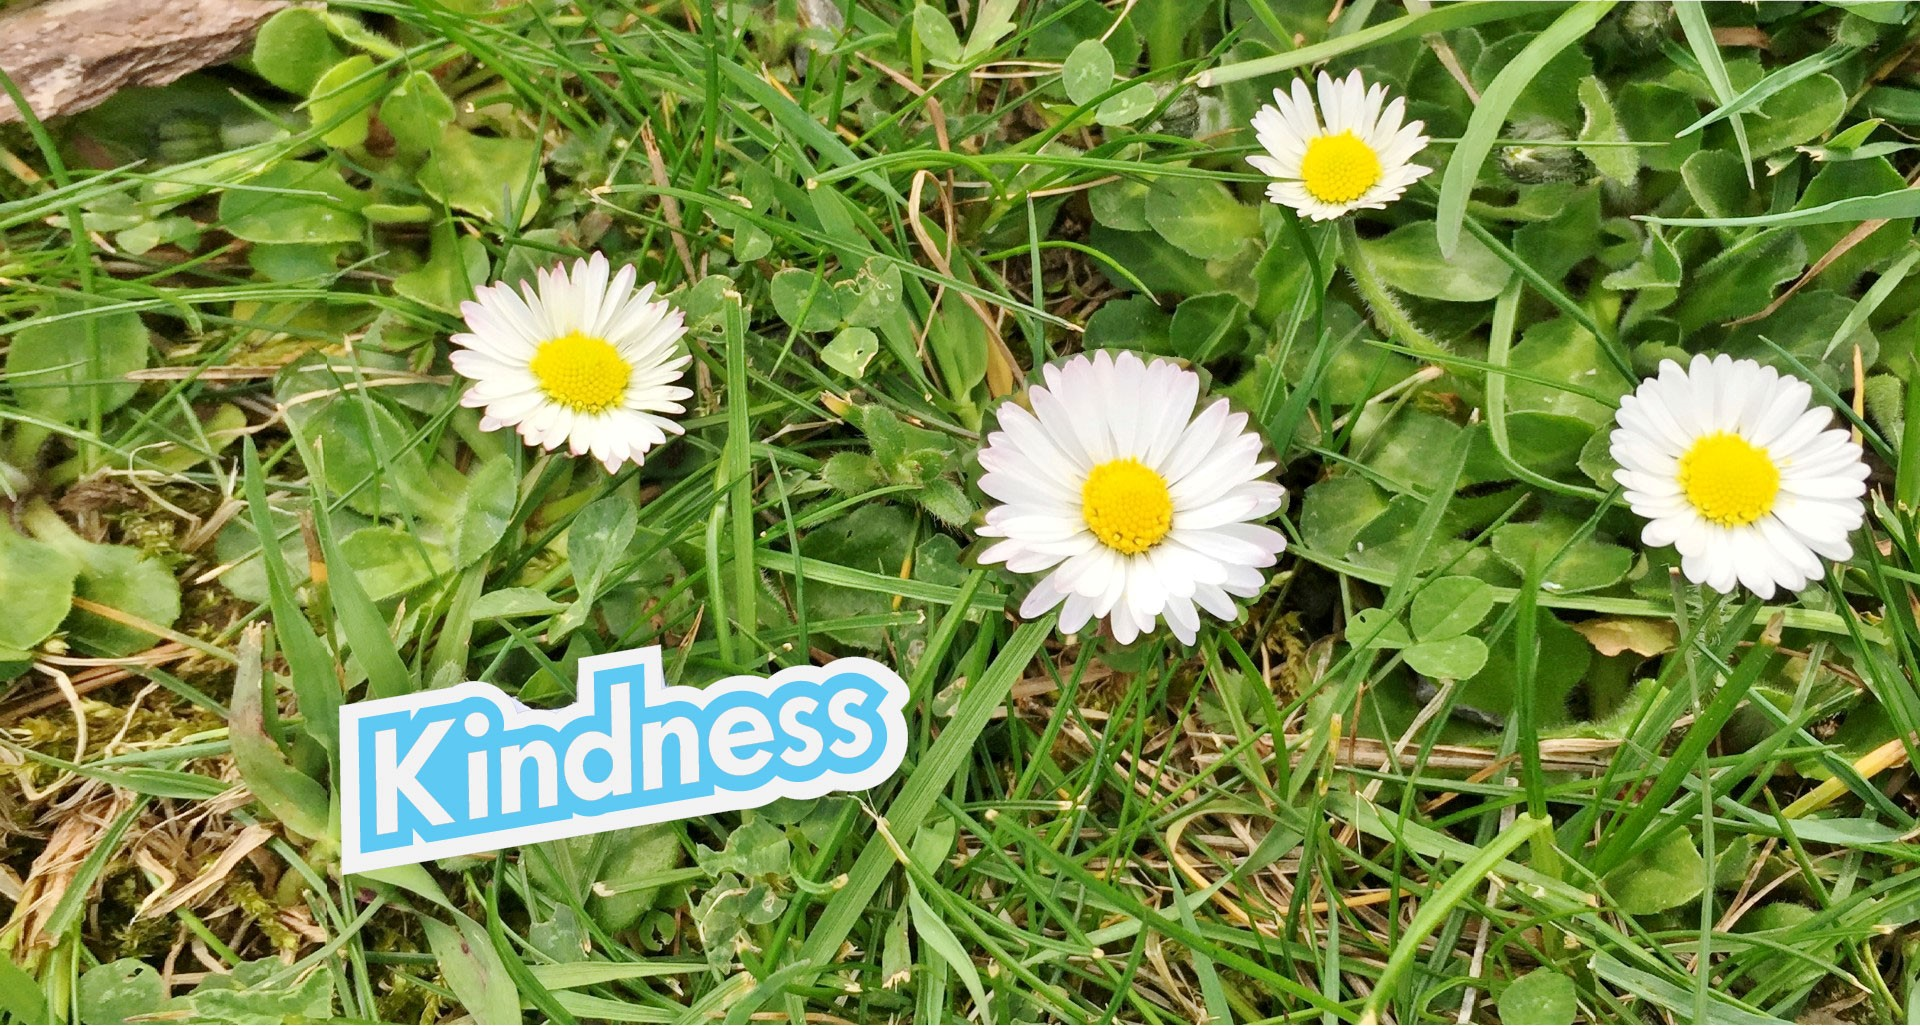 Kindness main flower